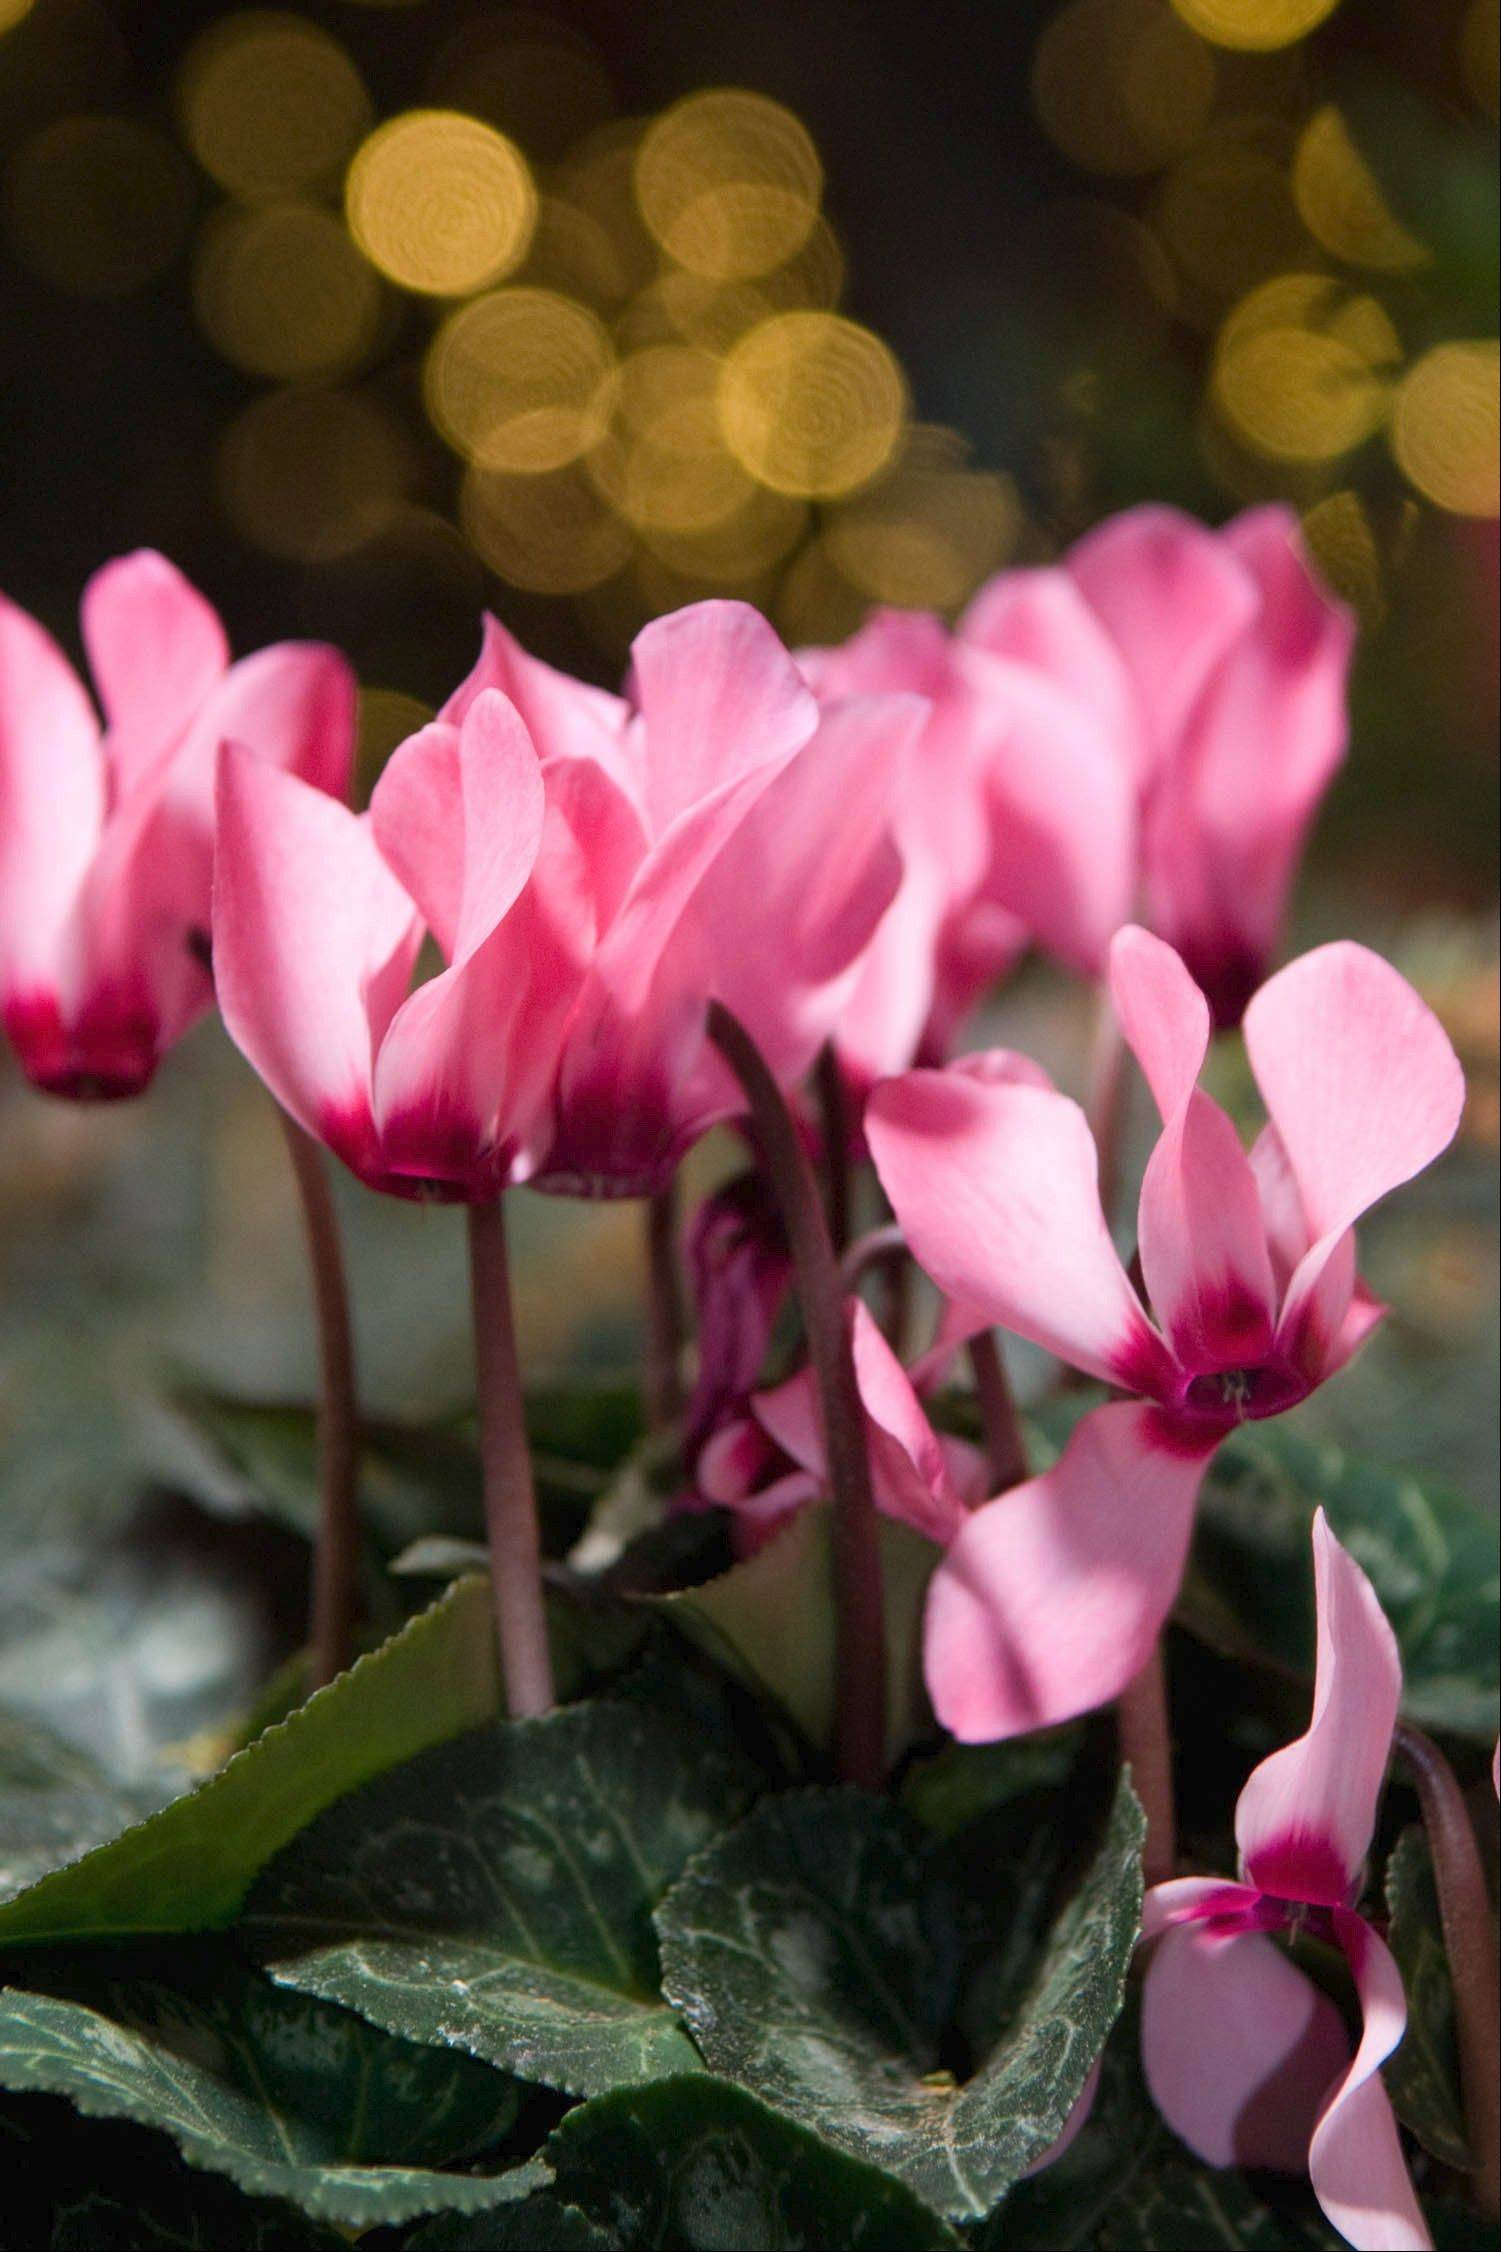 Plants given as gifts during the holidays, like the cyclamen pictured, often are wrapped in colorful foil, which traps water in the roots. Be sure to remove the foil, or at least punch holes in the bottom to allow water to drain.